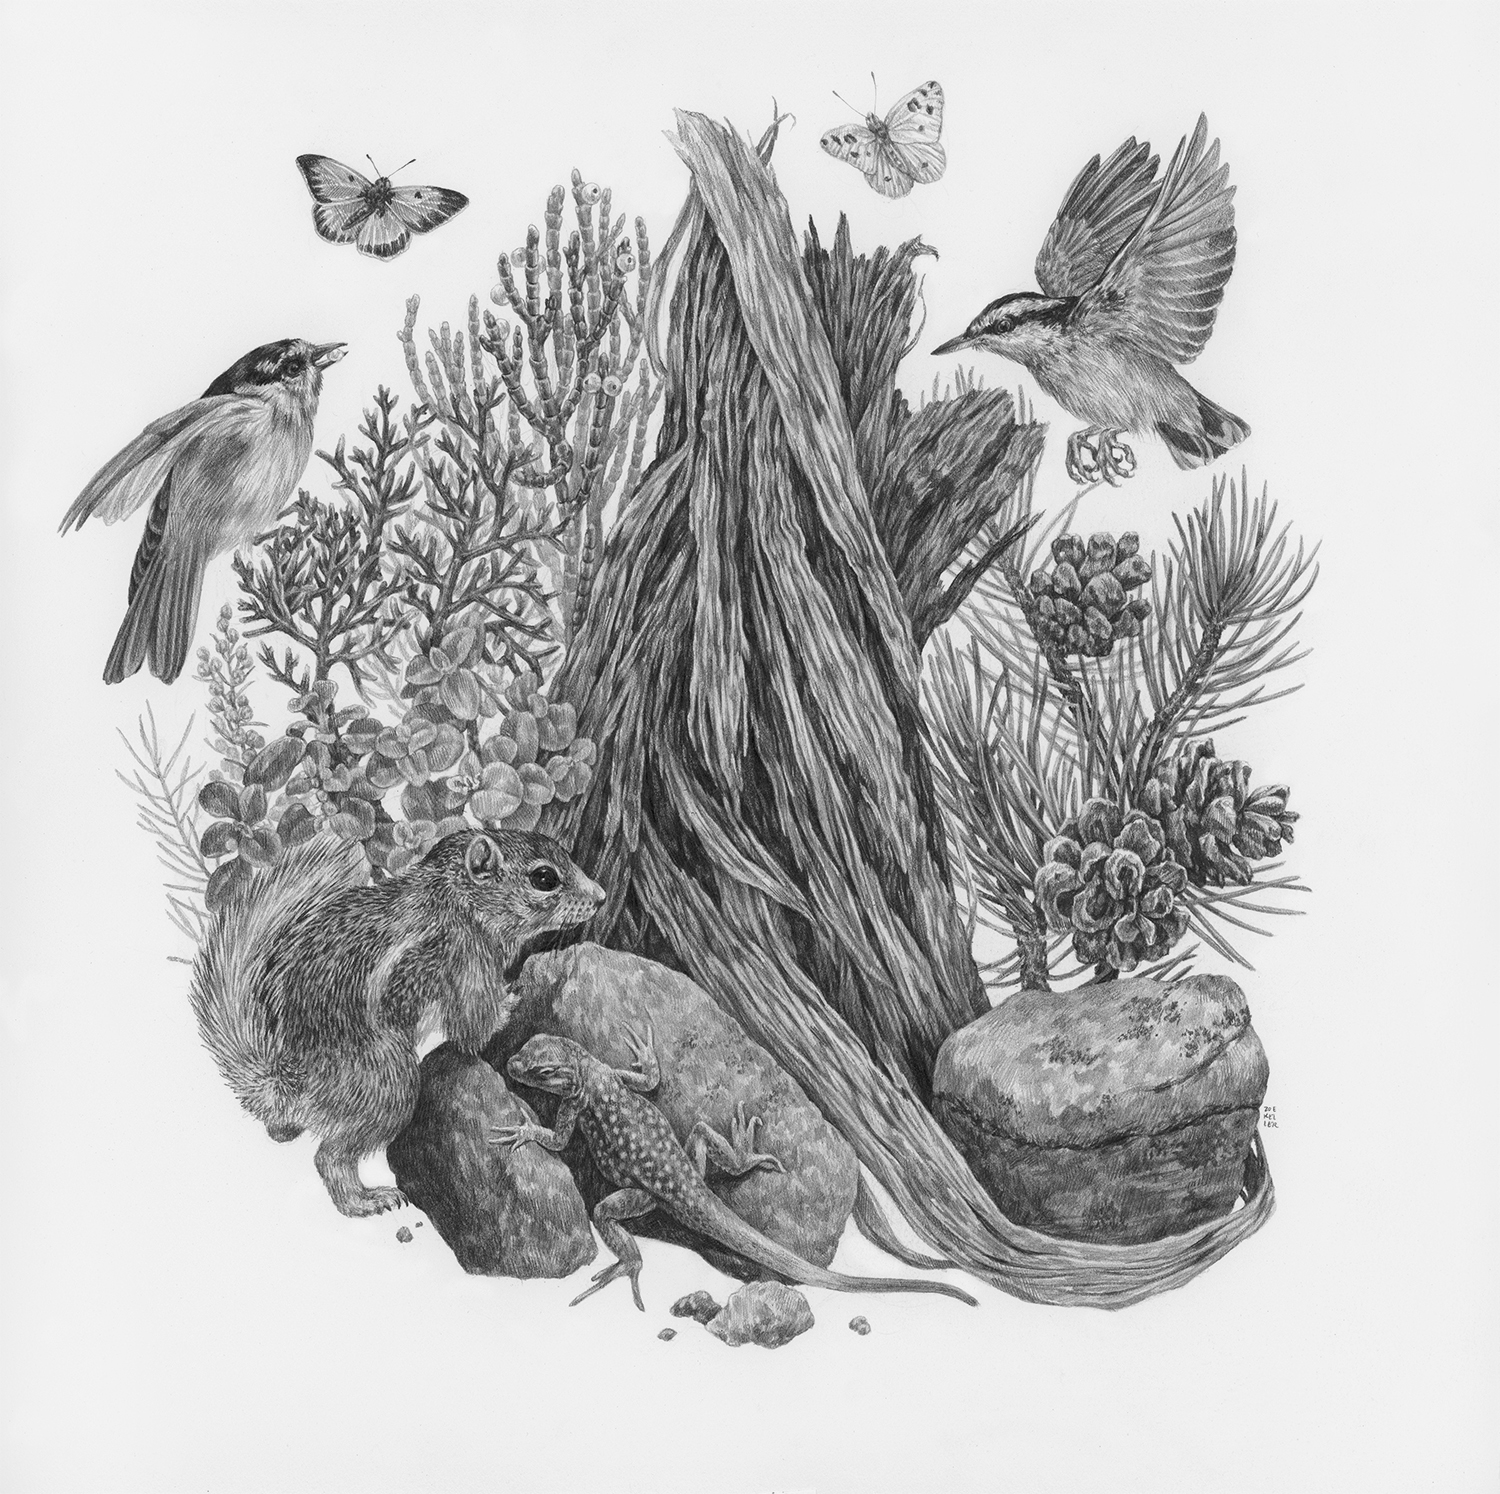 "The Watchman, 12"" x 12"", Graphite on paper, 2019  Click here to purchase through Antler Gallery   SPECIES DEPICTED  White-tailed antelope squirrel, Chickadee, Red-breasted Nuthatch, Singleleaf Pine, Juniper, Roundleaf Buffaloberry, observed but unidentified lizard and butterflies"